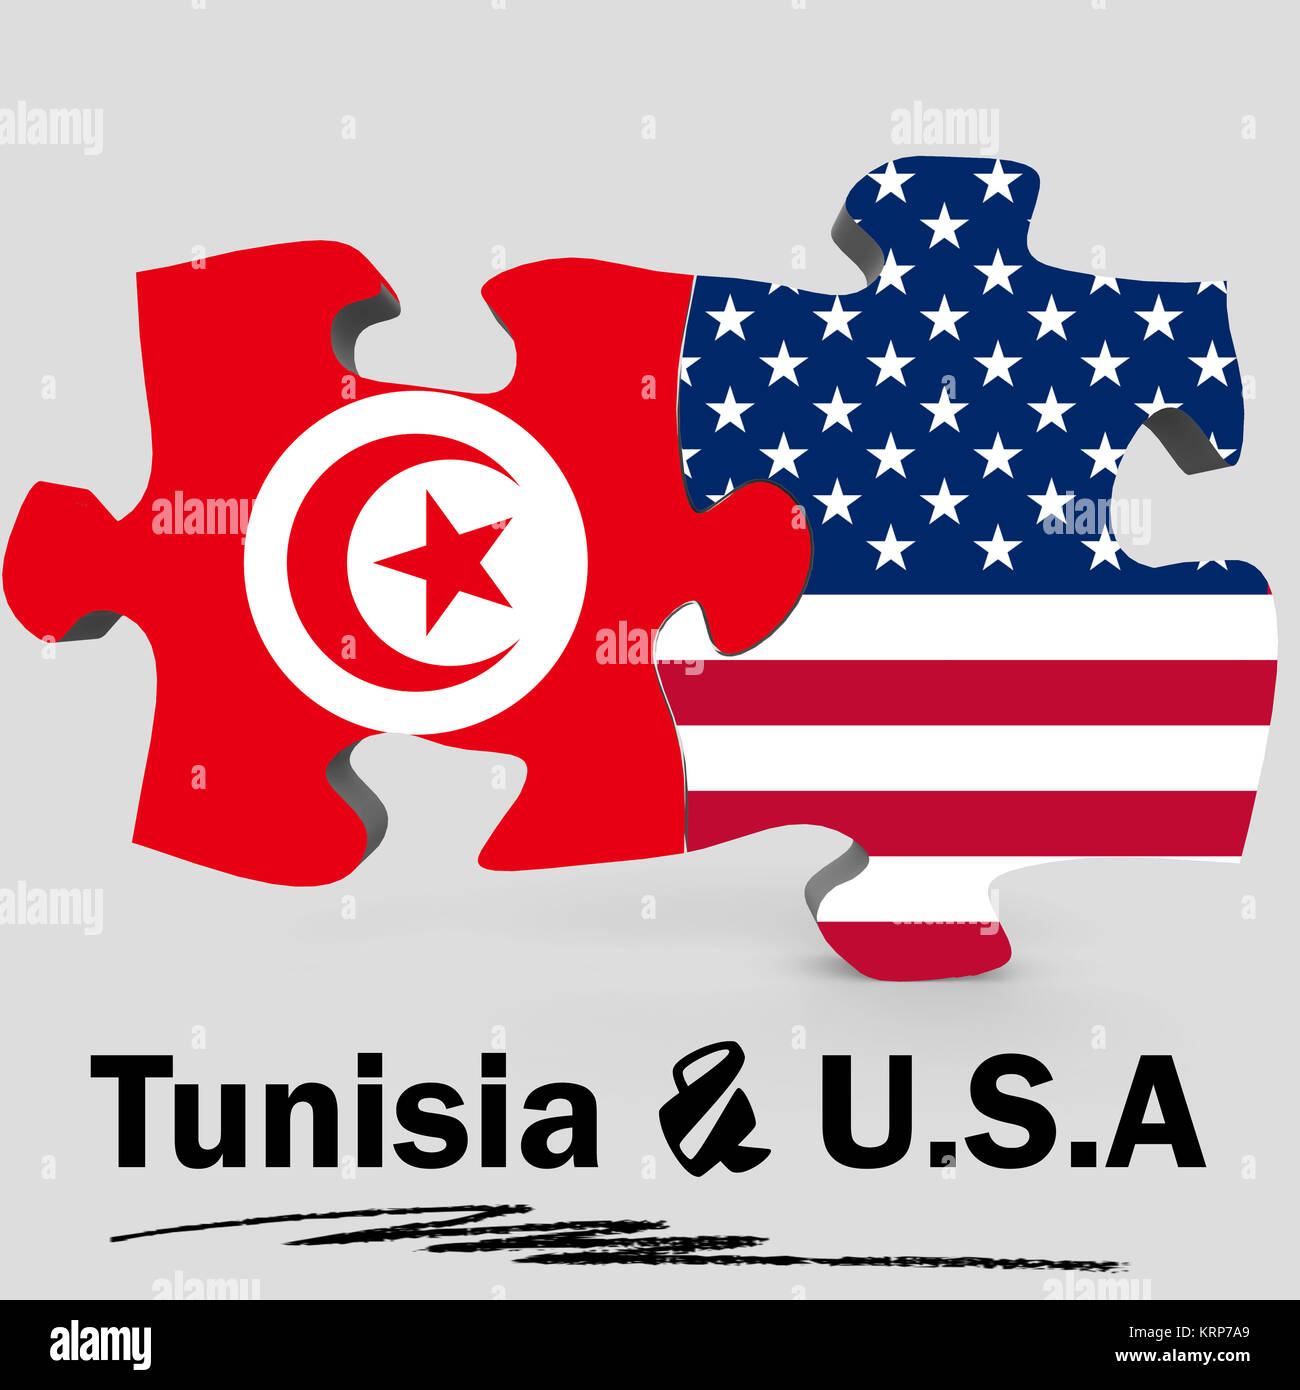 Usa Tunisia High Resolution Stock Photography And Images Alamy